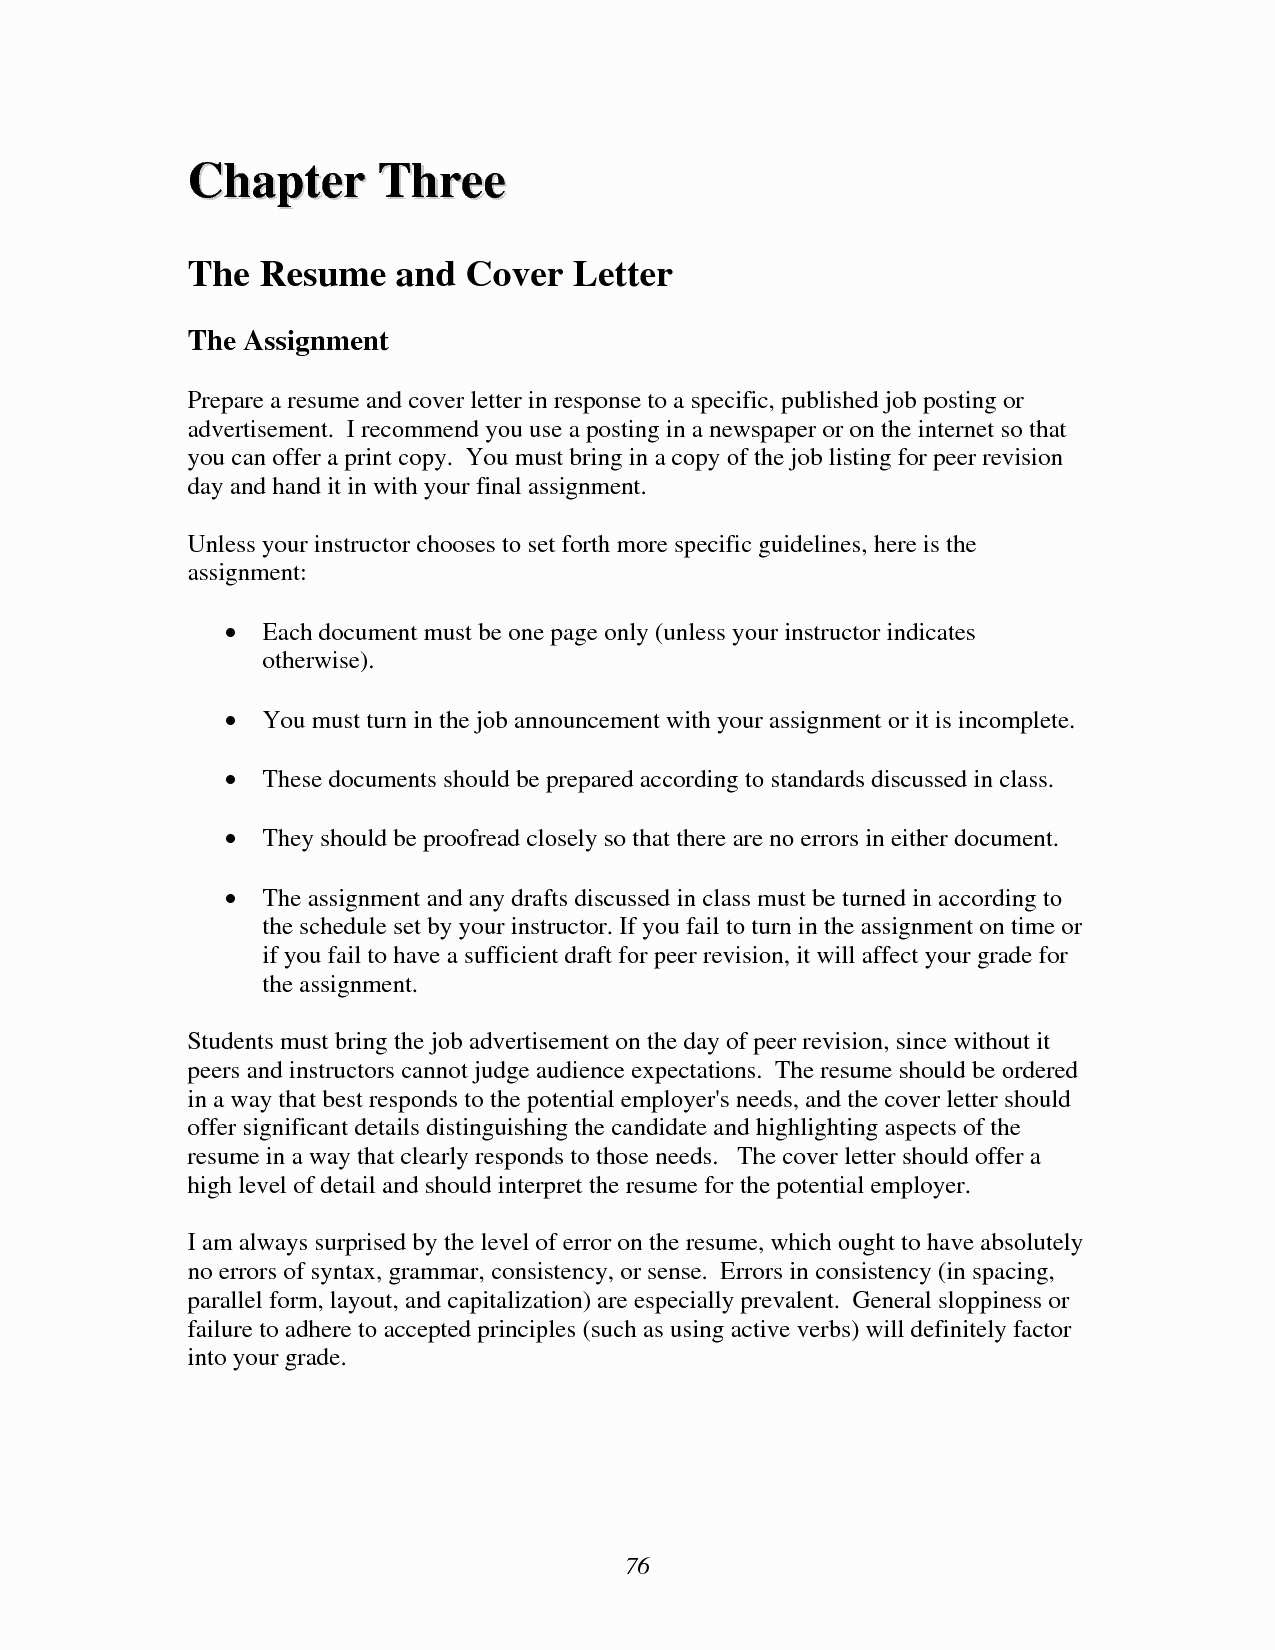 Bad Check Letter Template - Job Fer Letter Template Us Copy Od Consultant Cover Letter Fungram